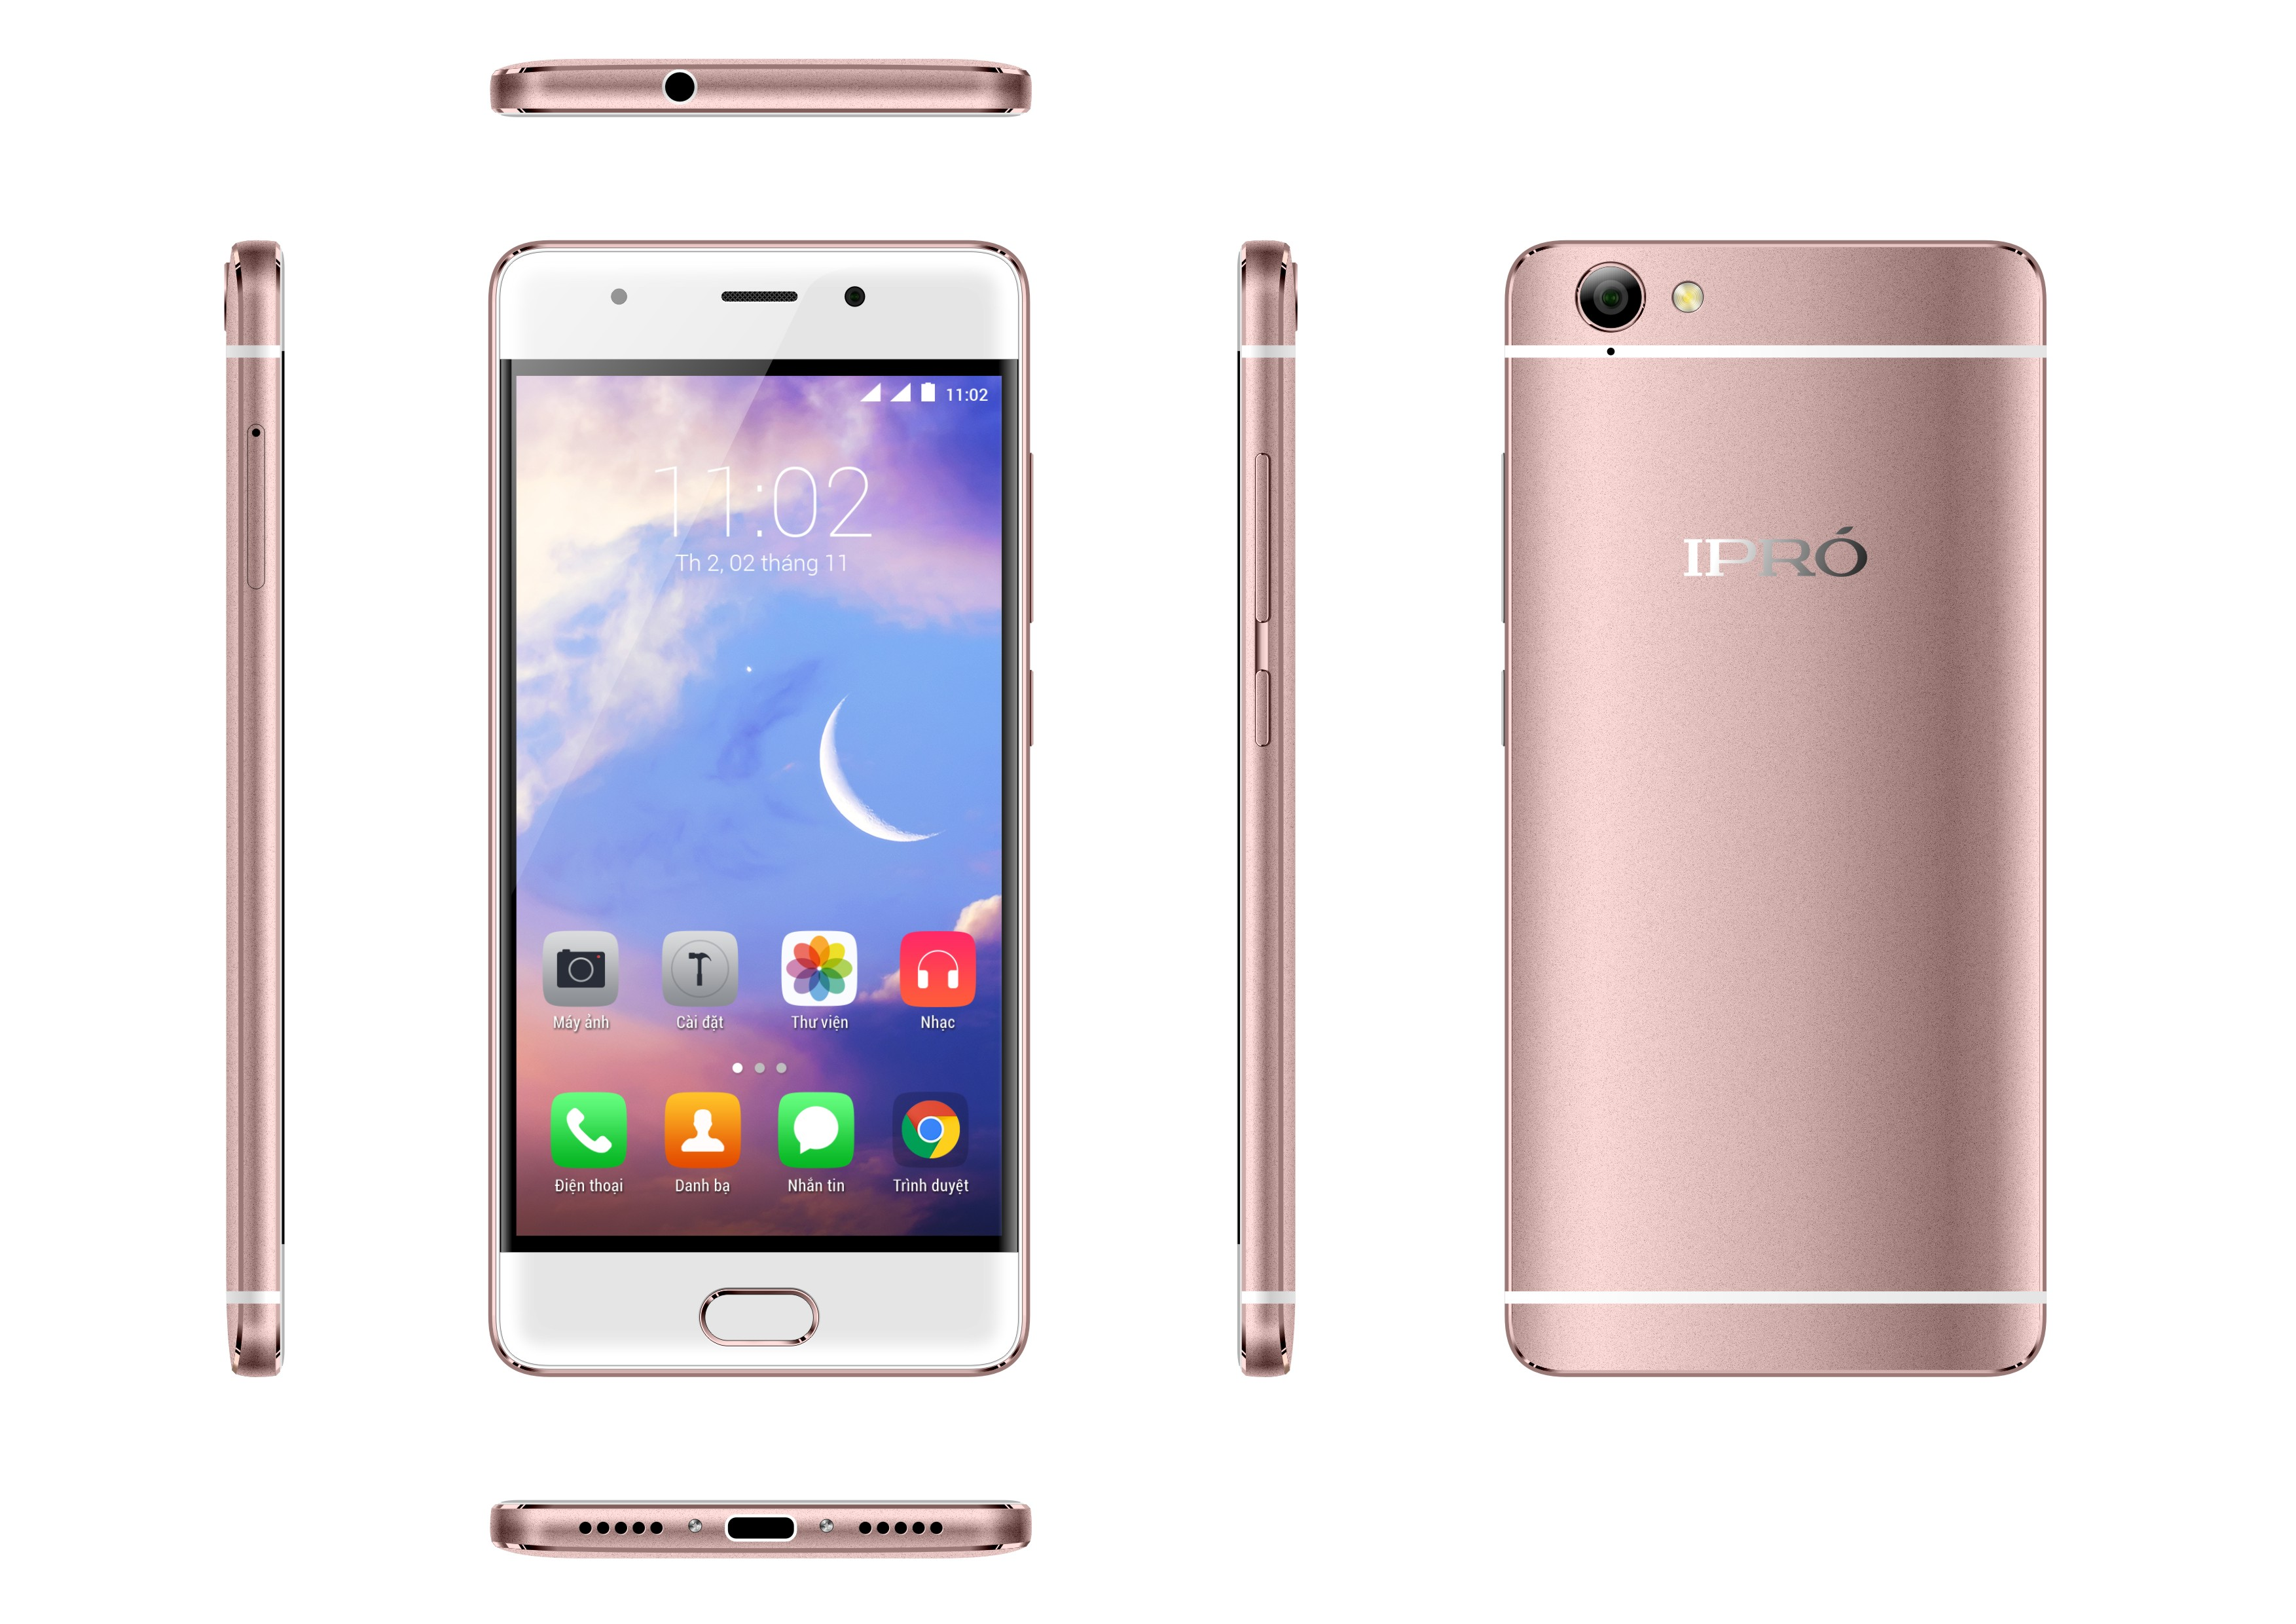 IPRO GALA 6(I950D)-Manufacturer OEM cell phone mobile smartphone 4g russian language 5 inch Precio Al Por Mayor